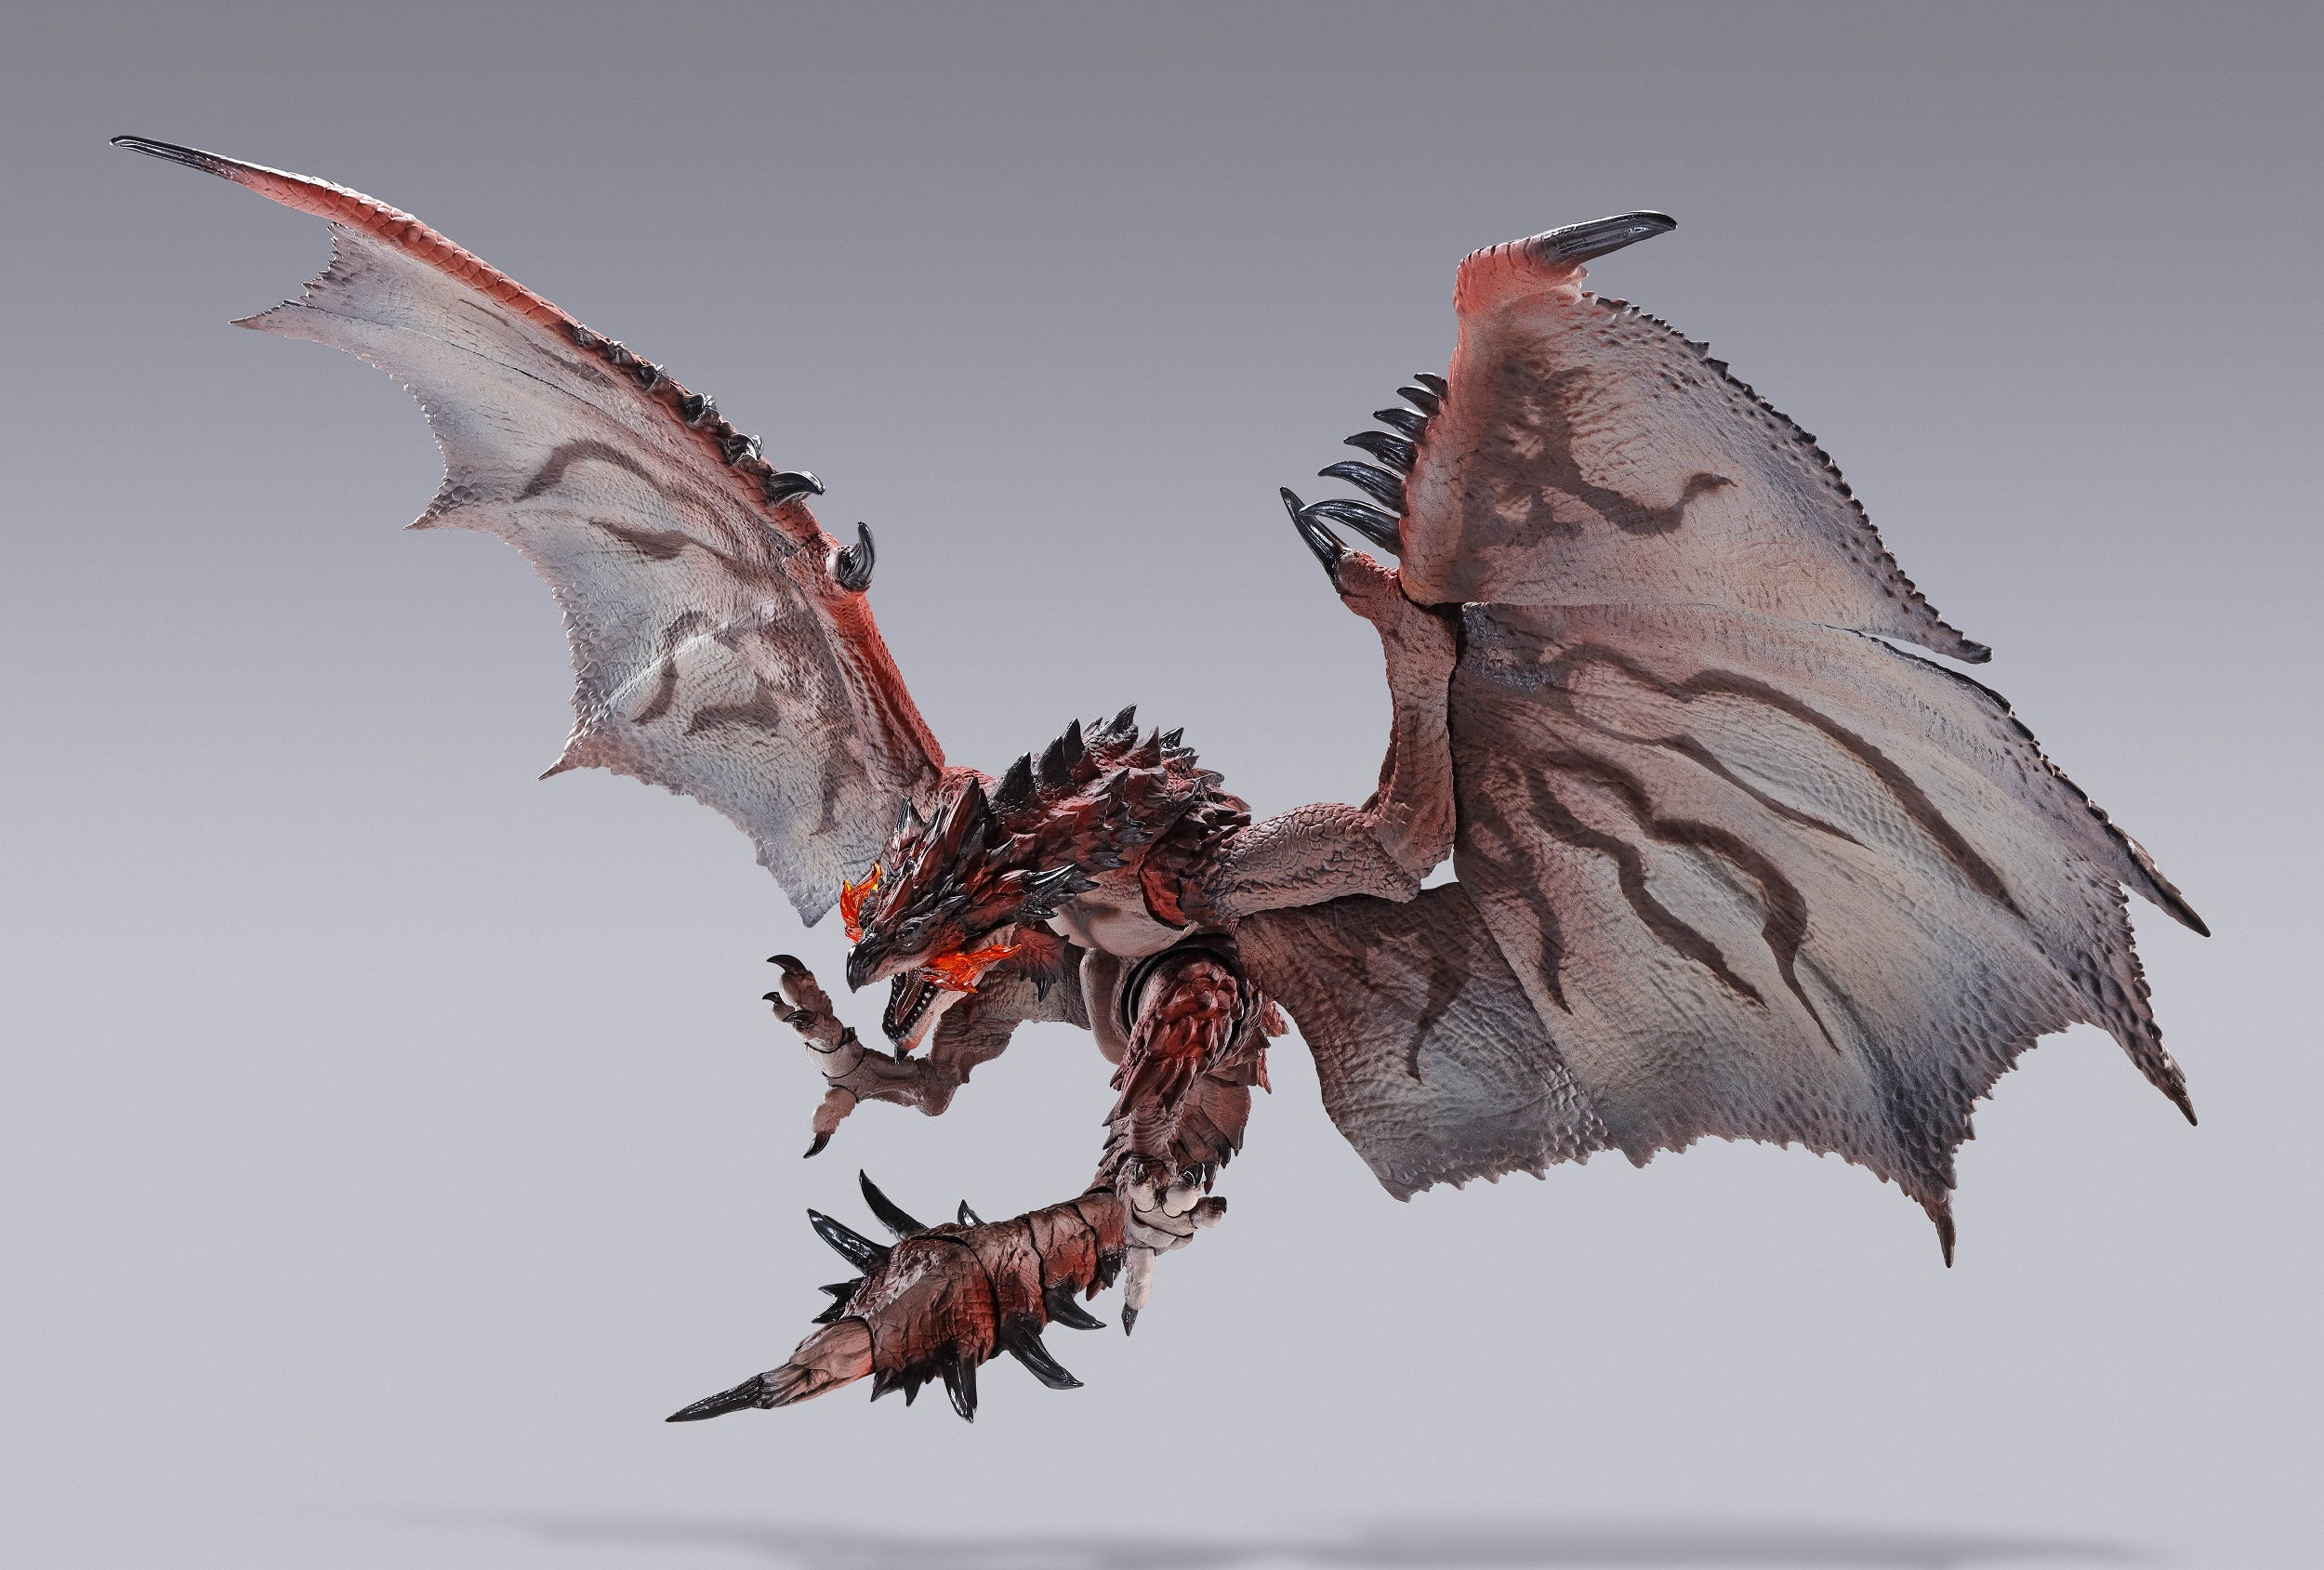 Rathalos is Coming to S.H. MonsterArts